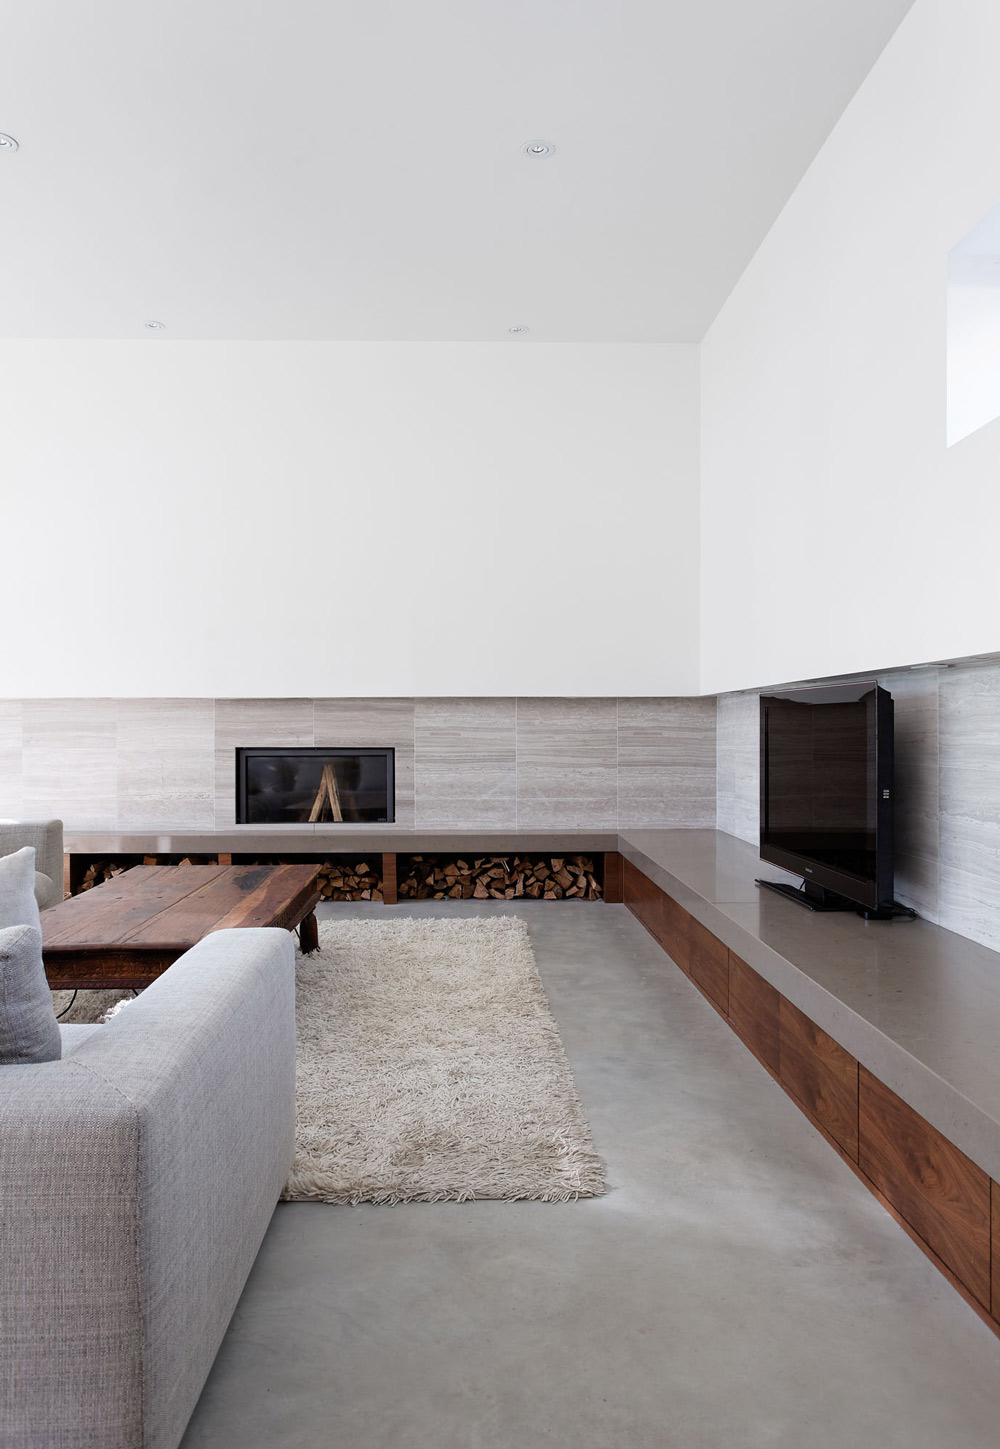 Rug, Sofa, Fireplace, Wood Store, Carling Residence in Ontario, Canada by TACT Architecture